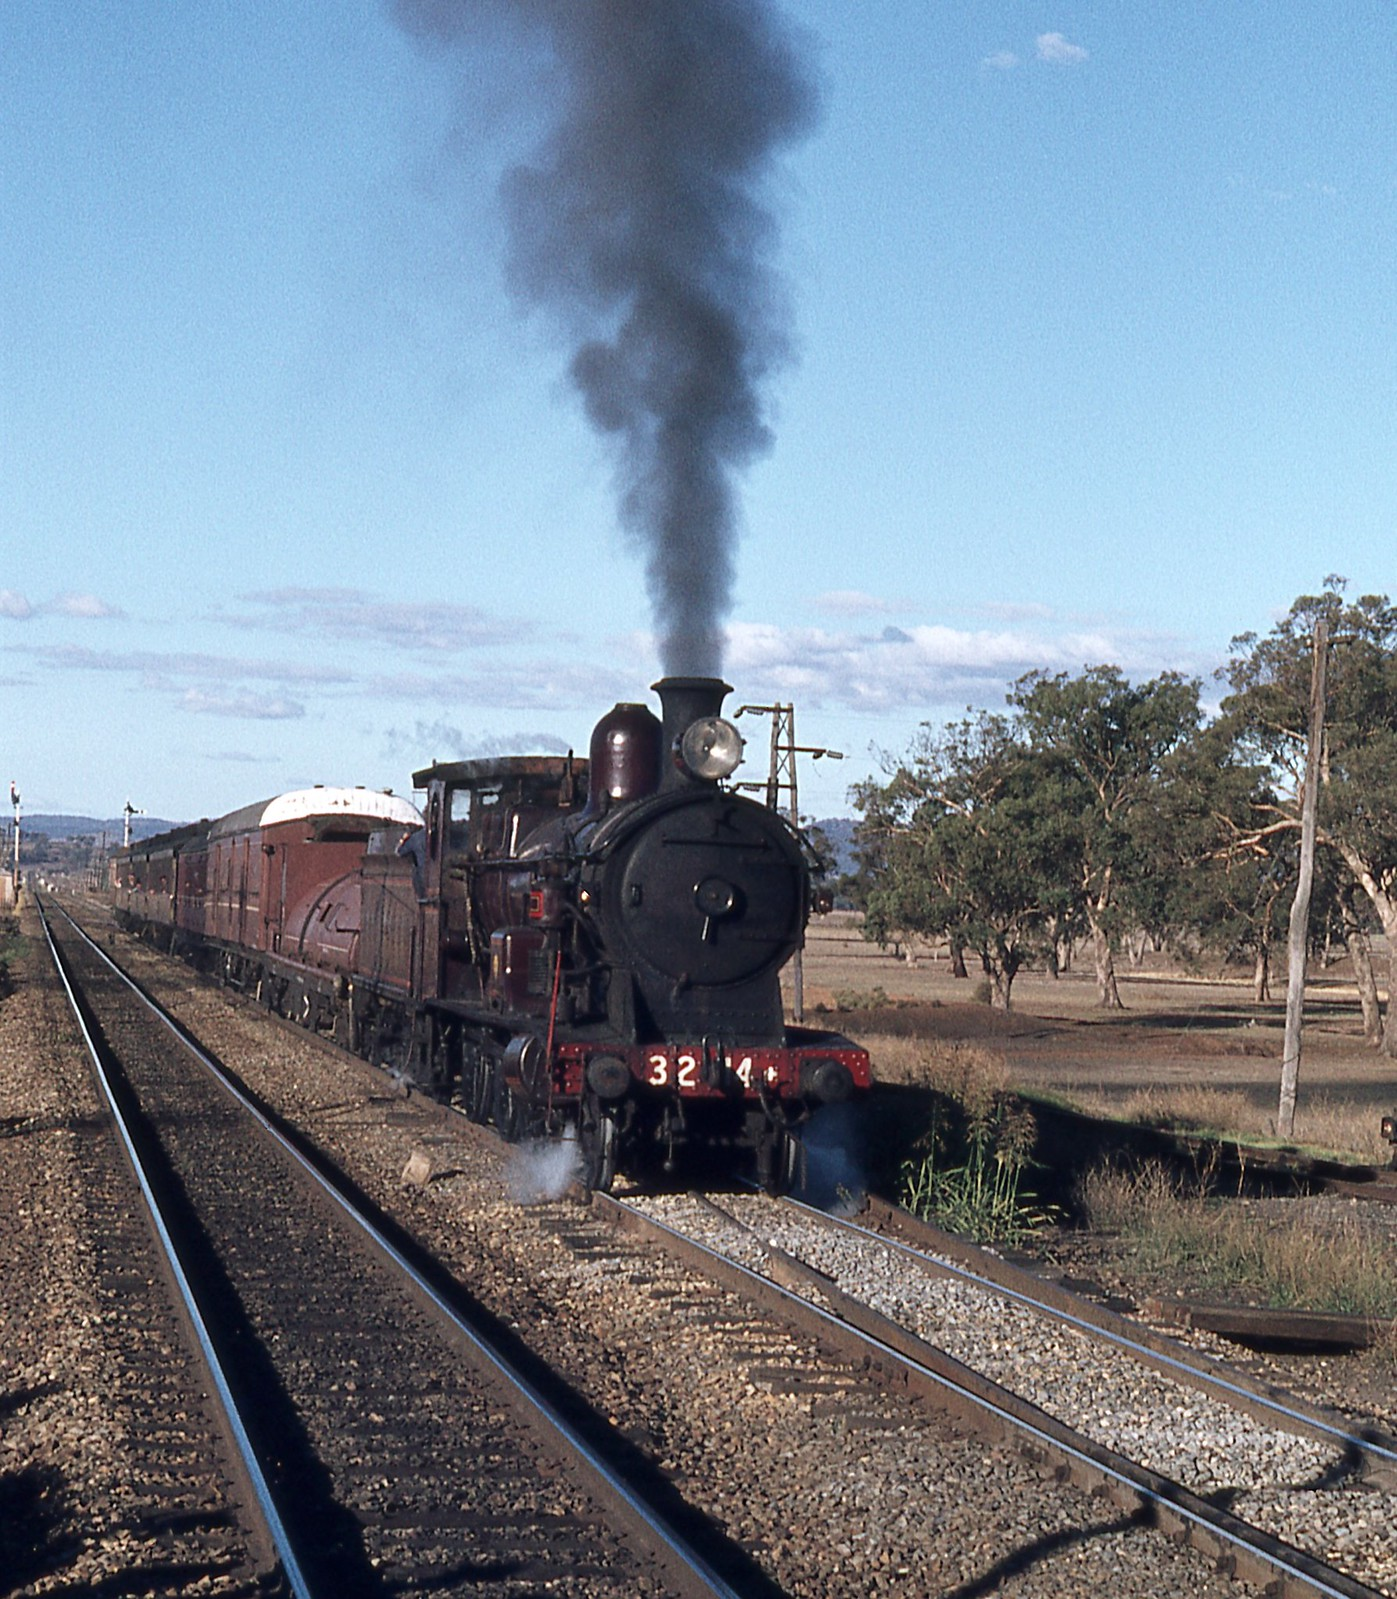 3214 on Tour Train, NSW by dunedoo